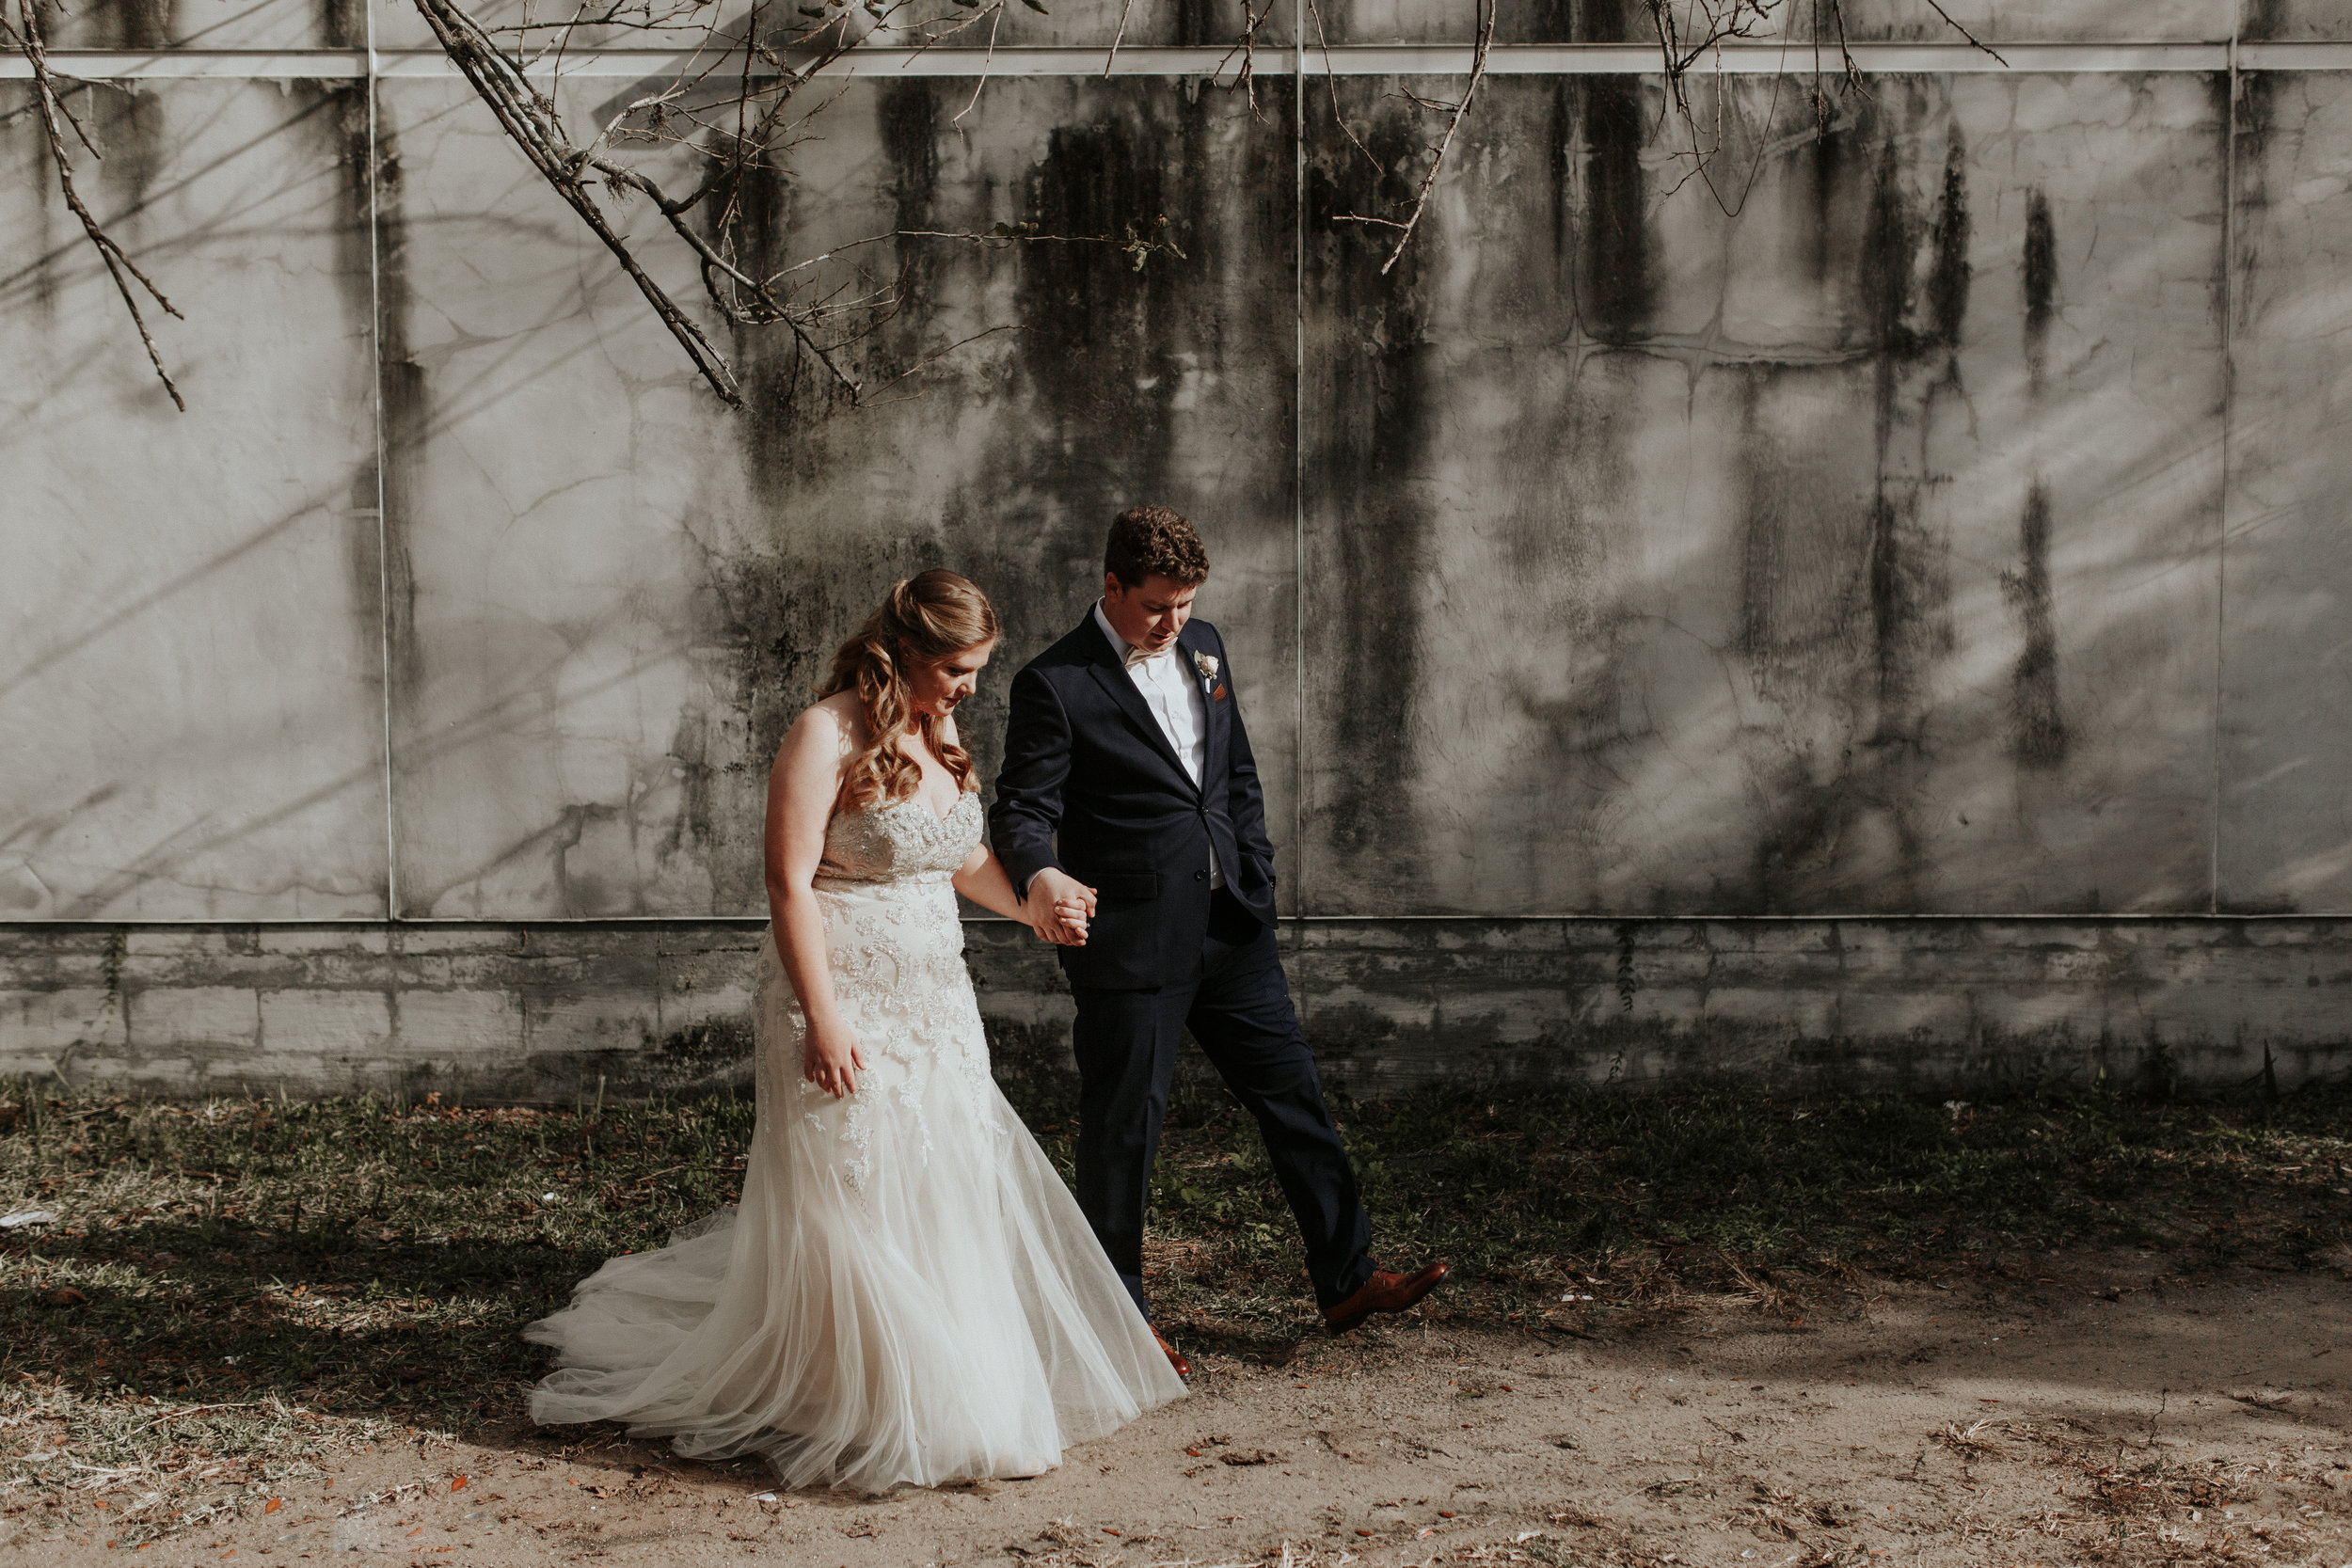 travisandsavannahweddingpreview17.jpg